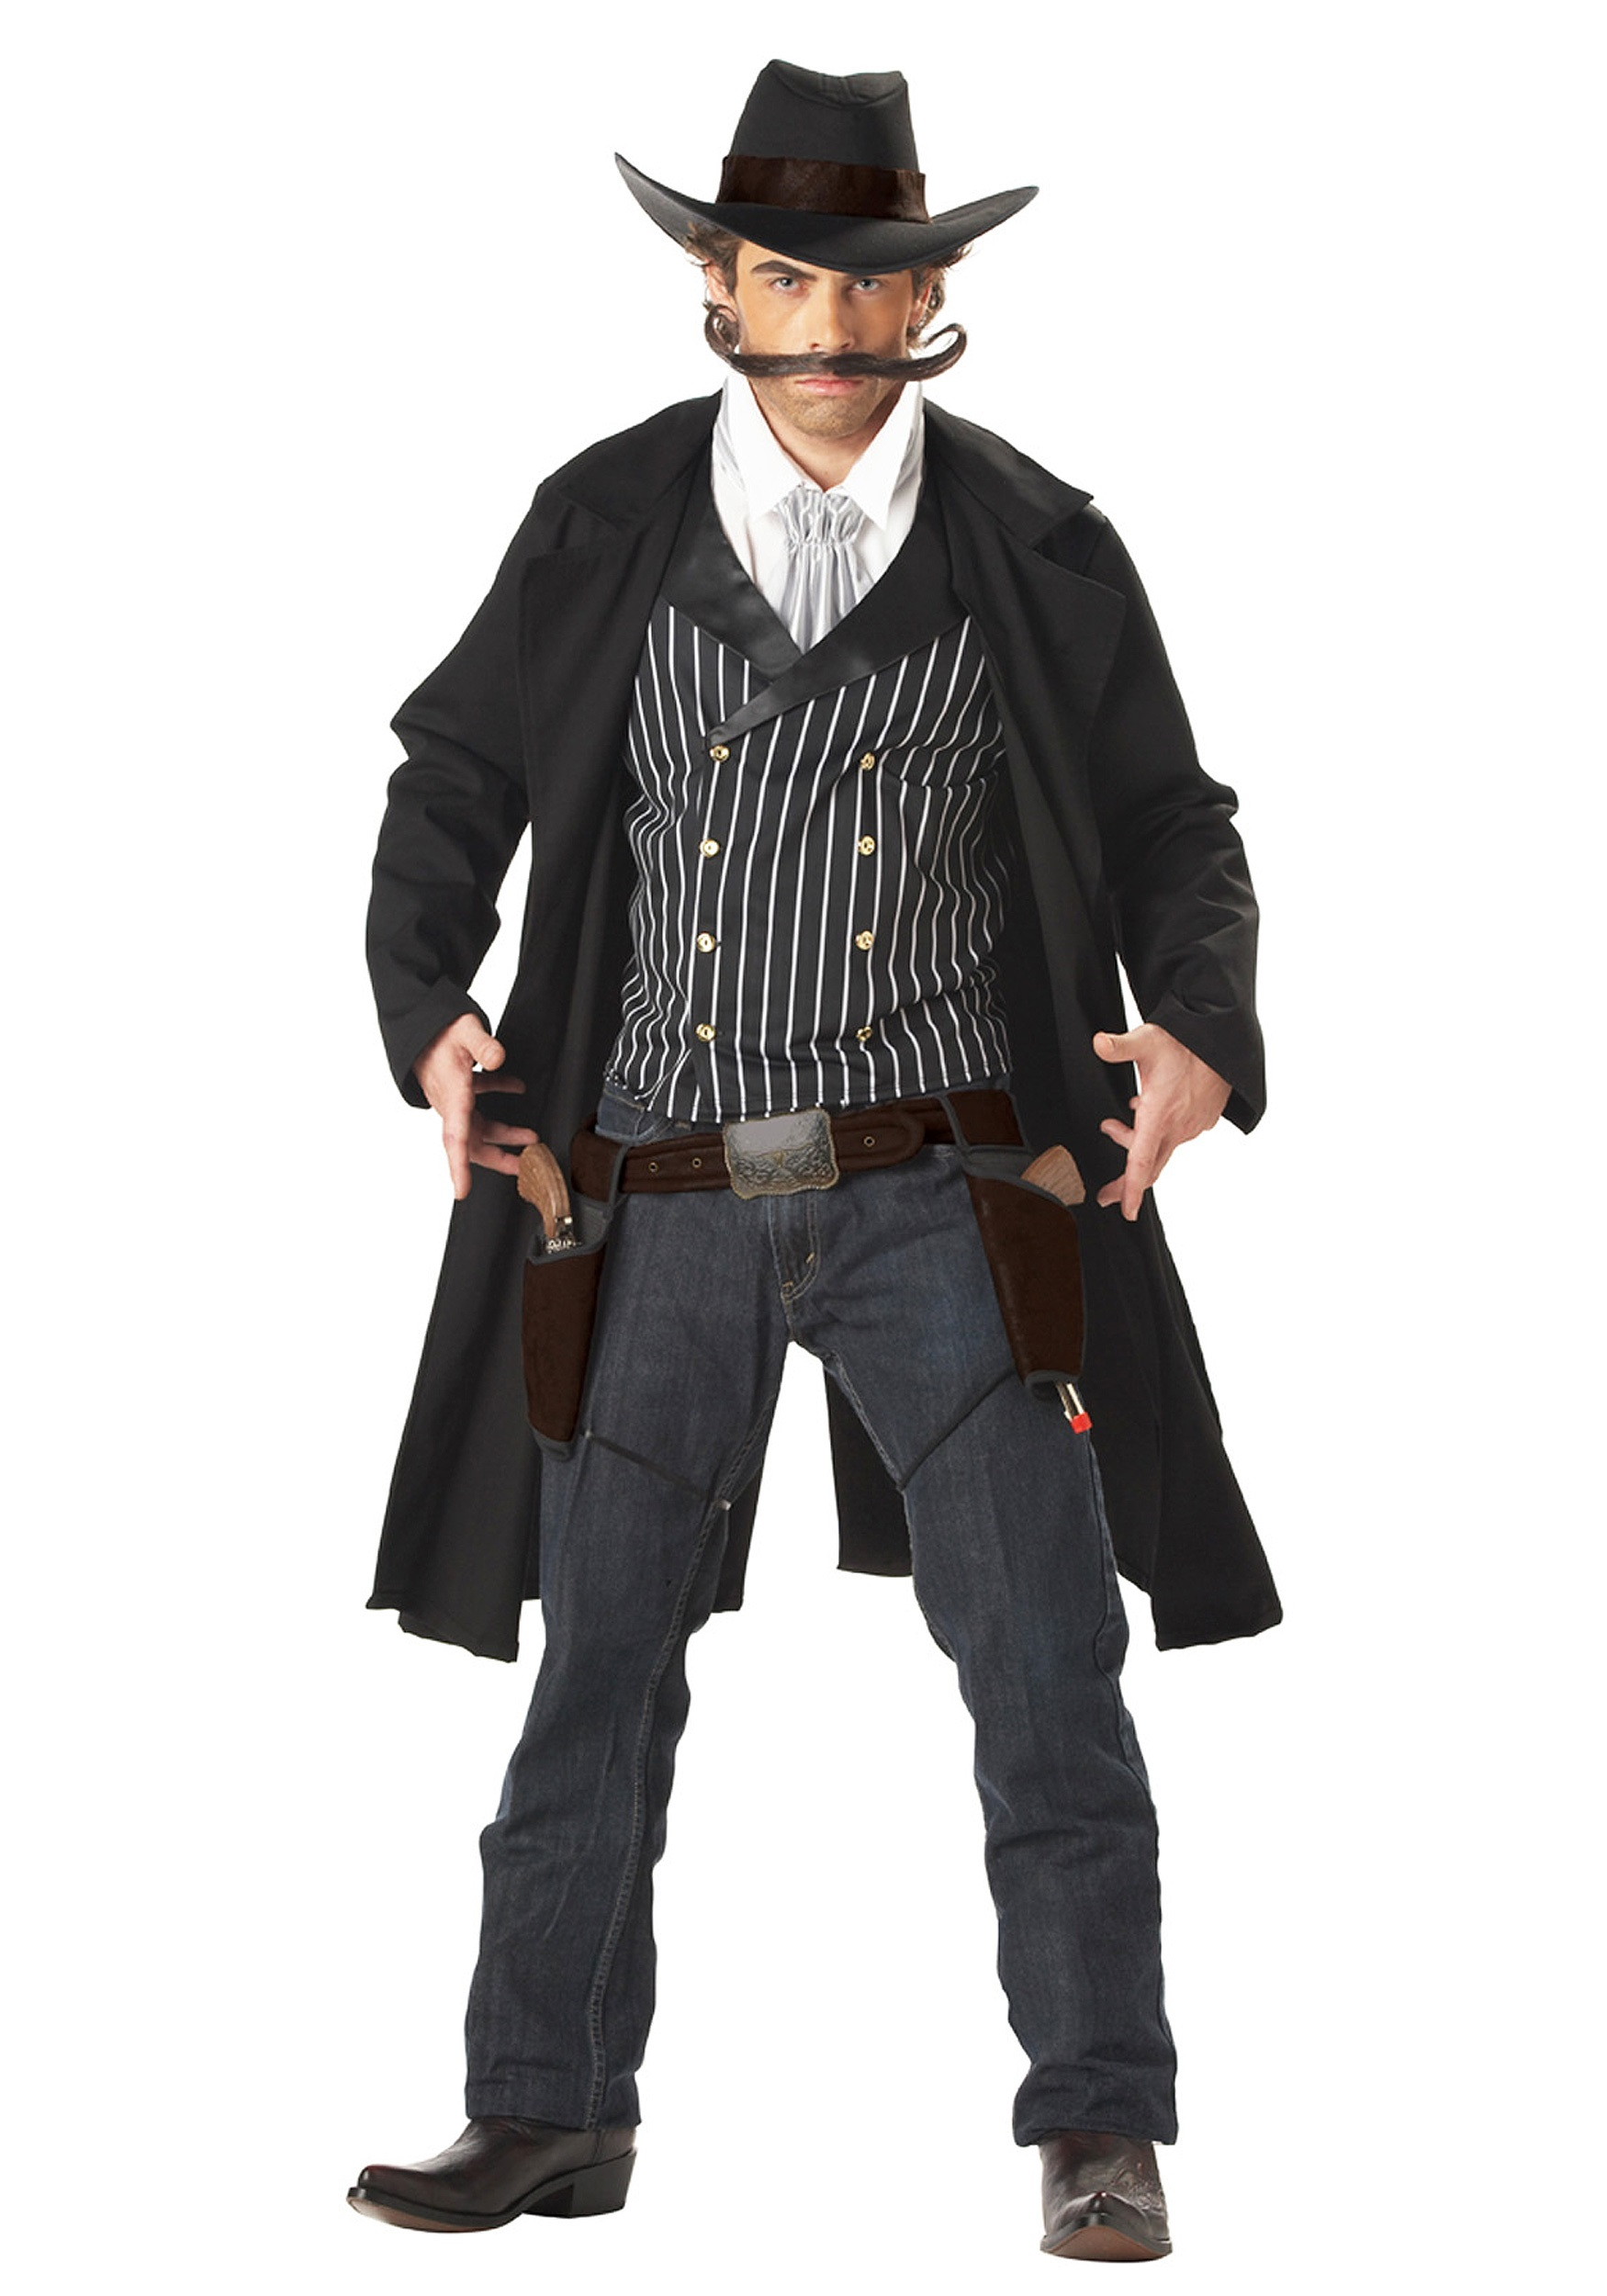 Wild Western Outlaw Costume for Men